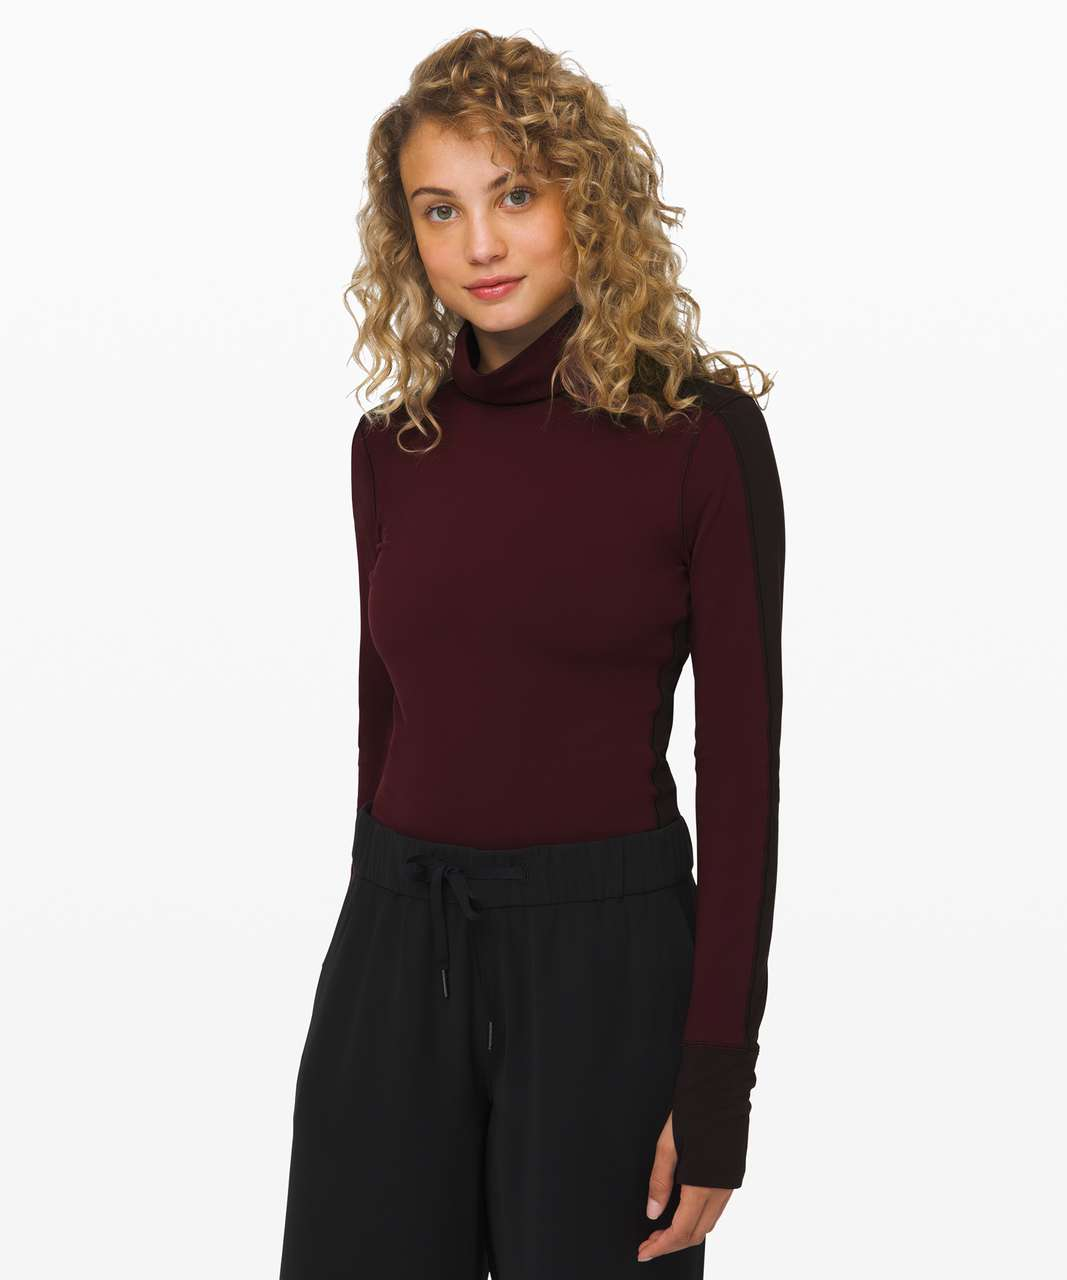 Lululemon Rest Refined Bodysuit - Garnet / Sequoia